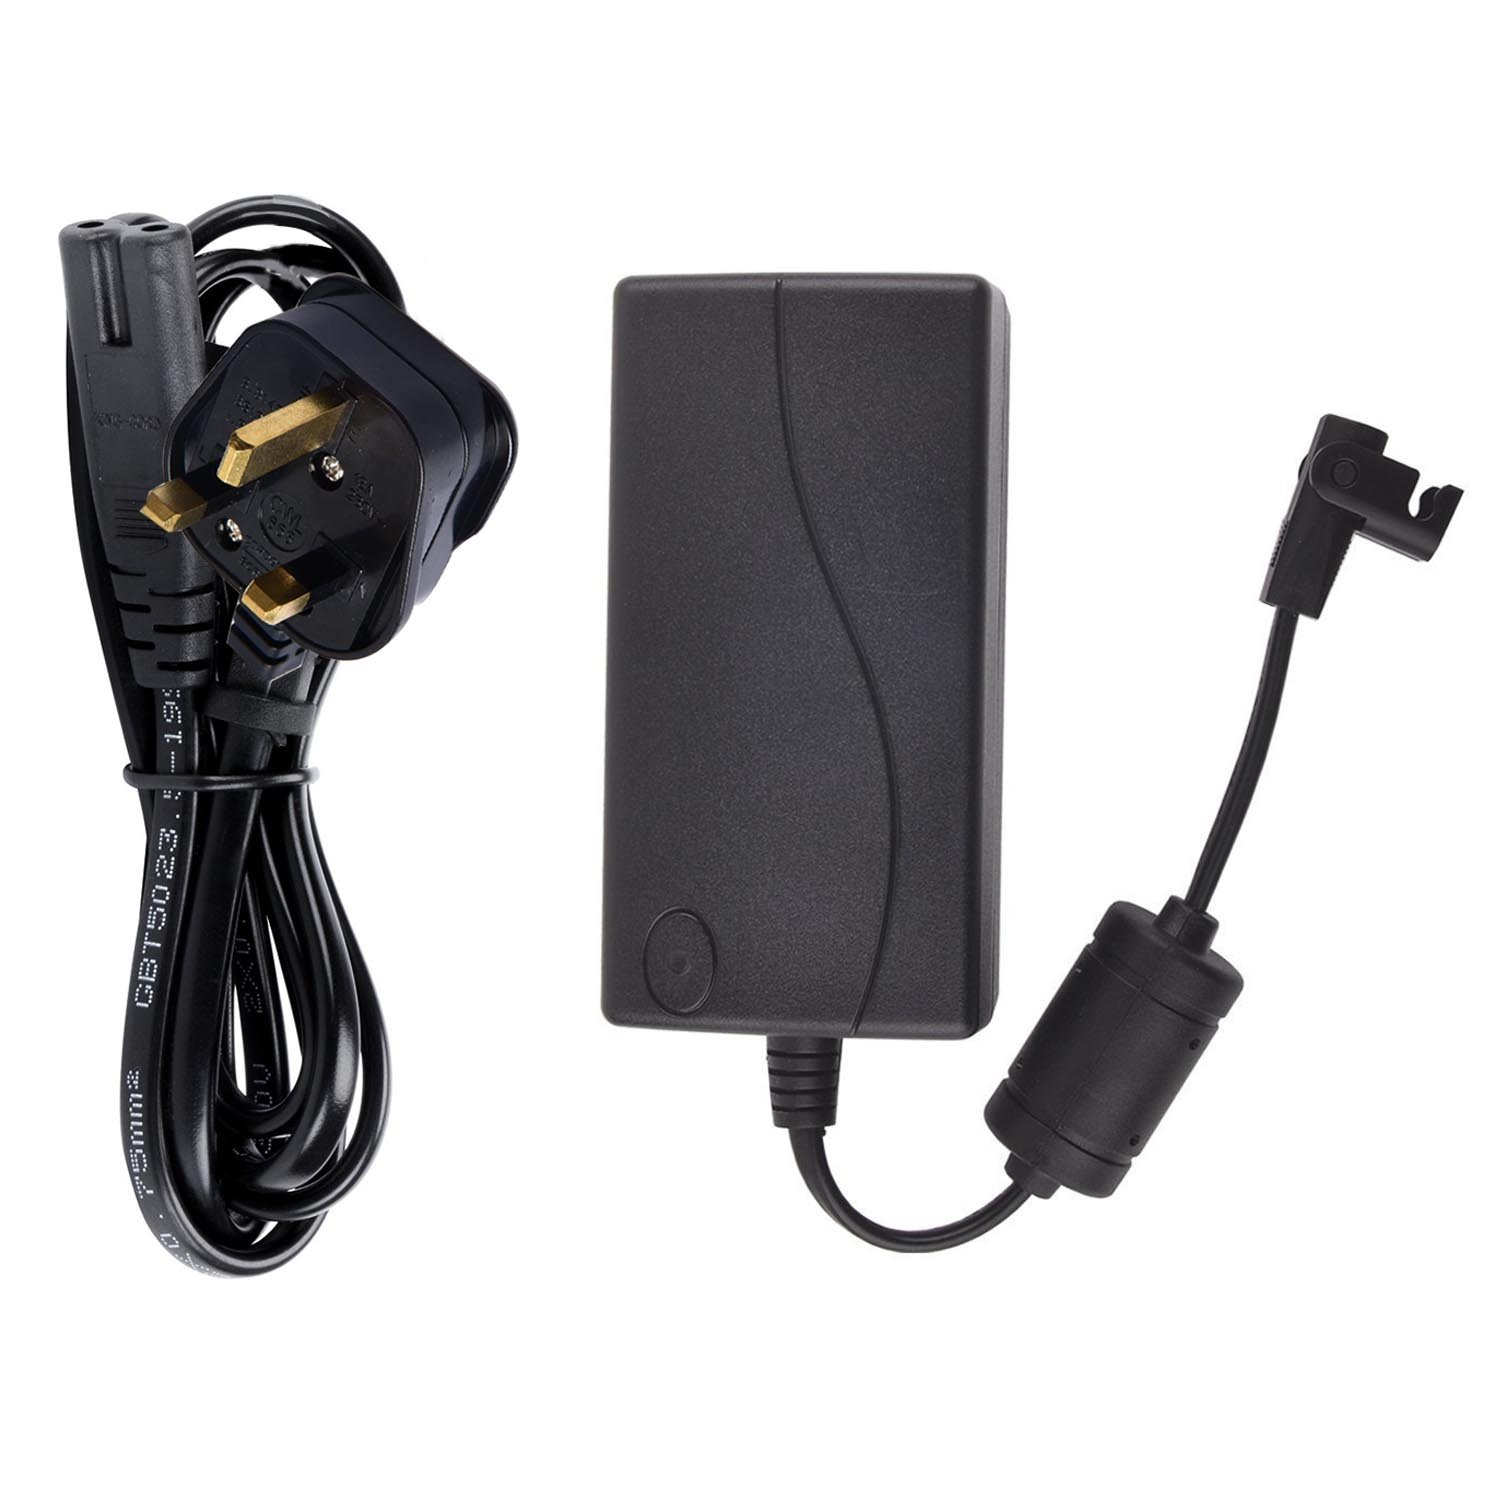 Power Recliner Adapter, 29V 2A Switching AC/DC Adapter Power Supply Transformer AC Power Wall Cord for Lift Chair Limoss OKIN Ywcking